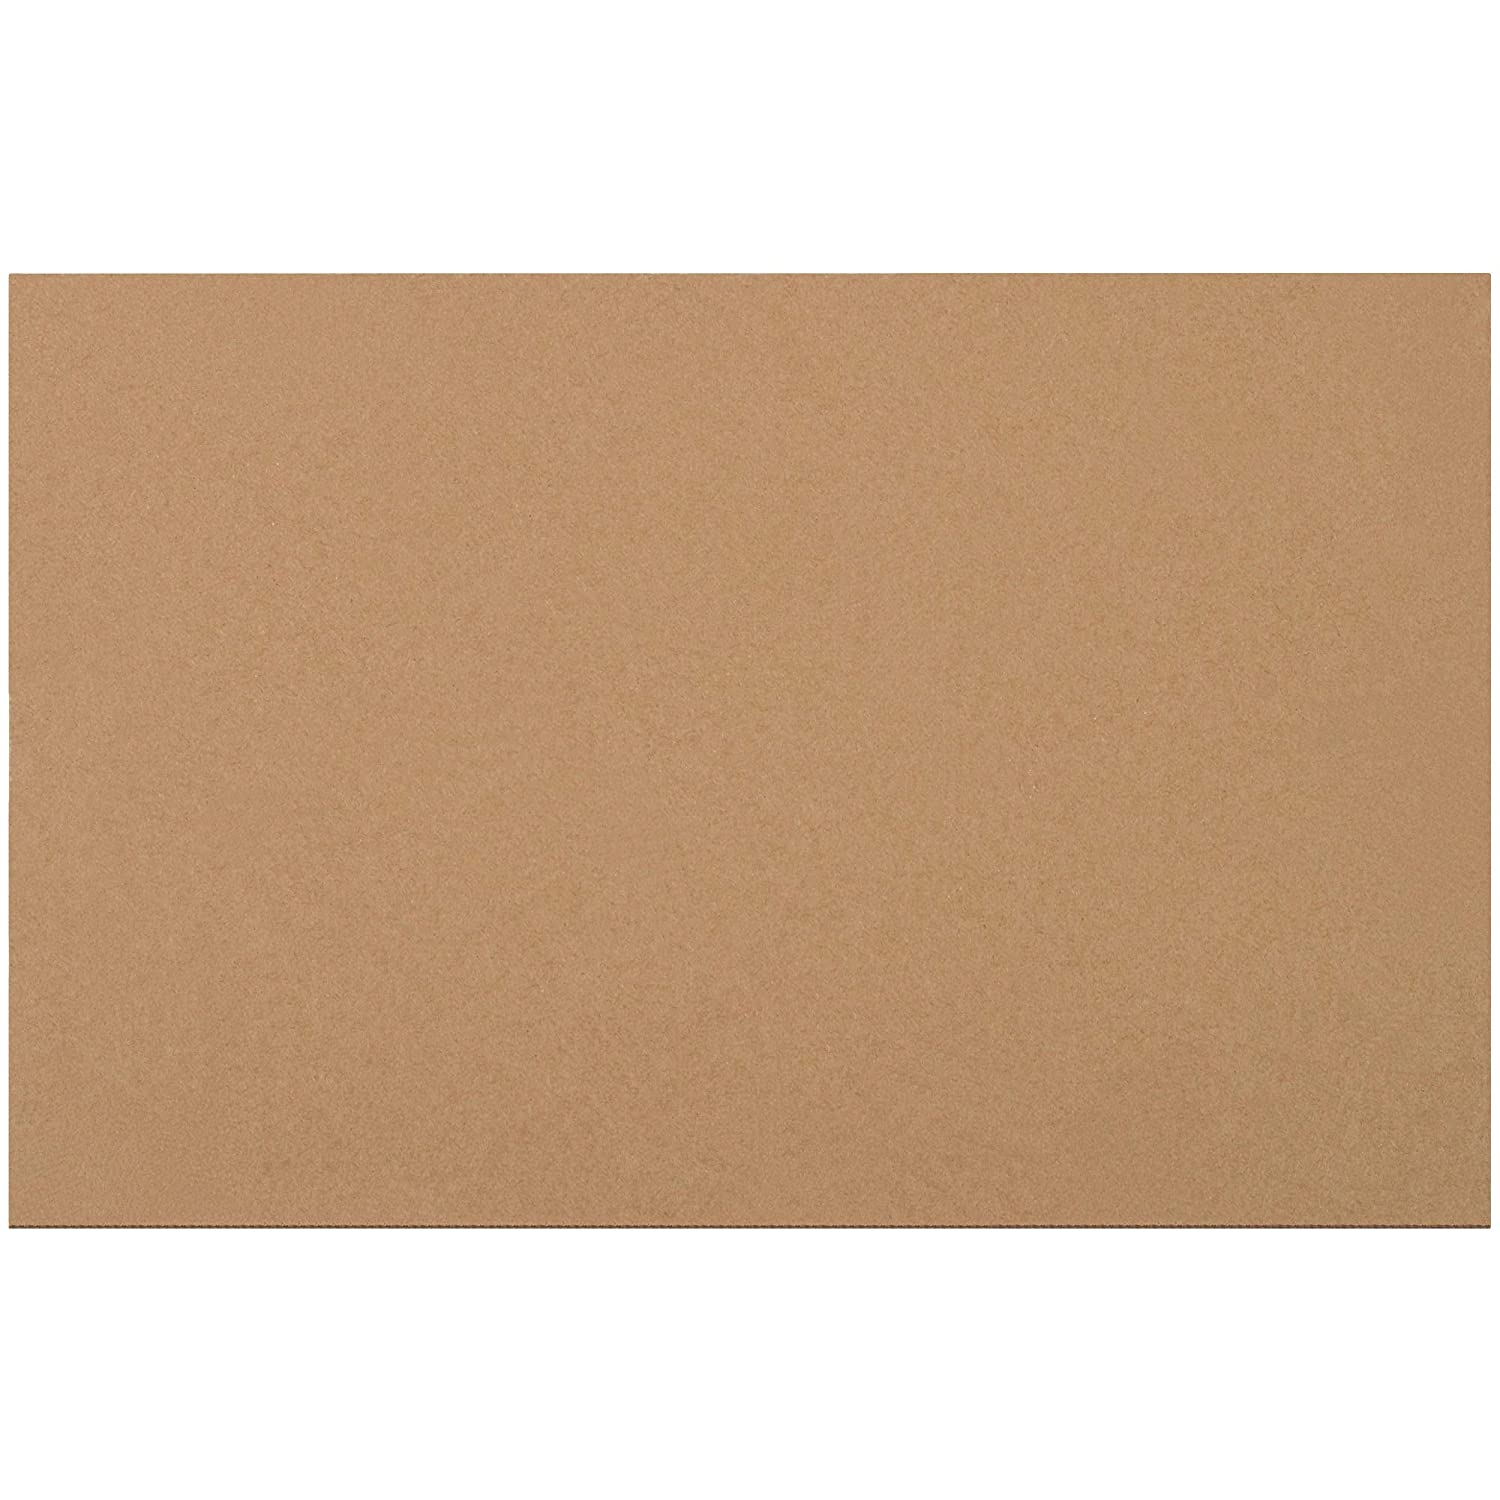 Low price Corrugated Layer Ranking TOP18 Pads 10 7 8